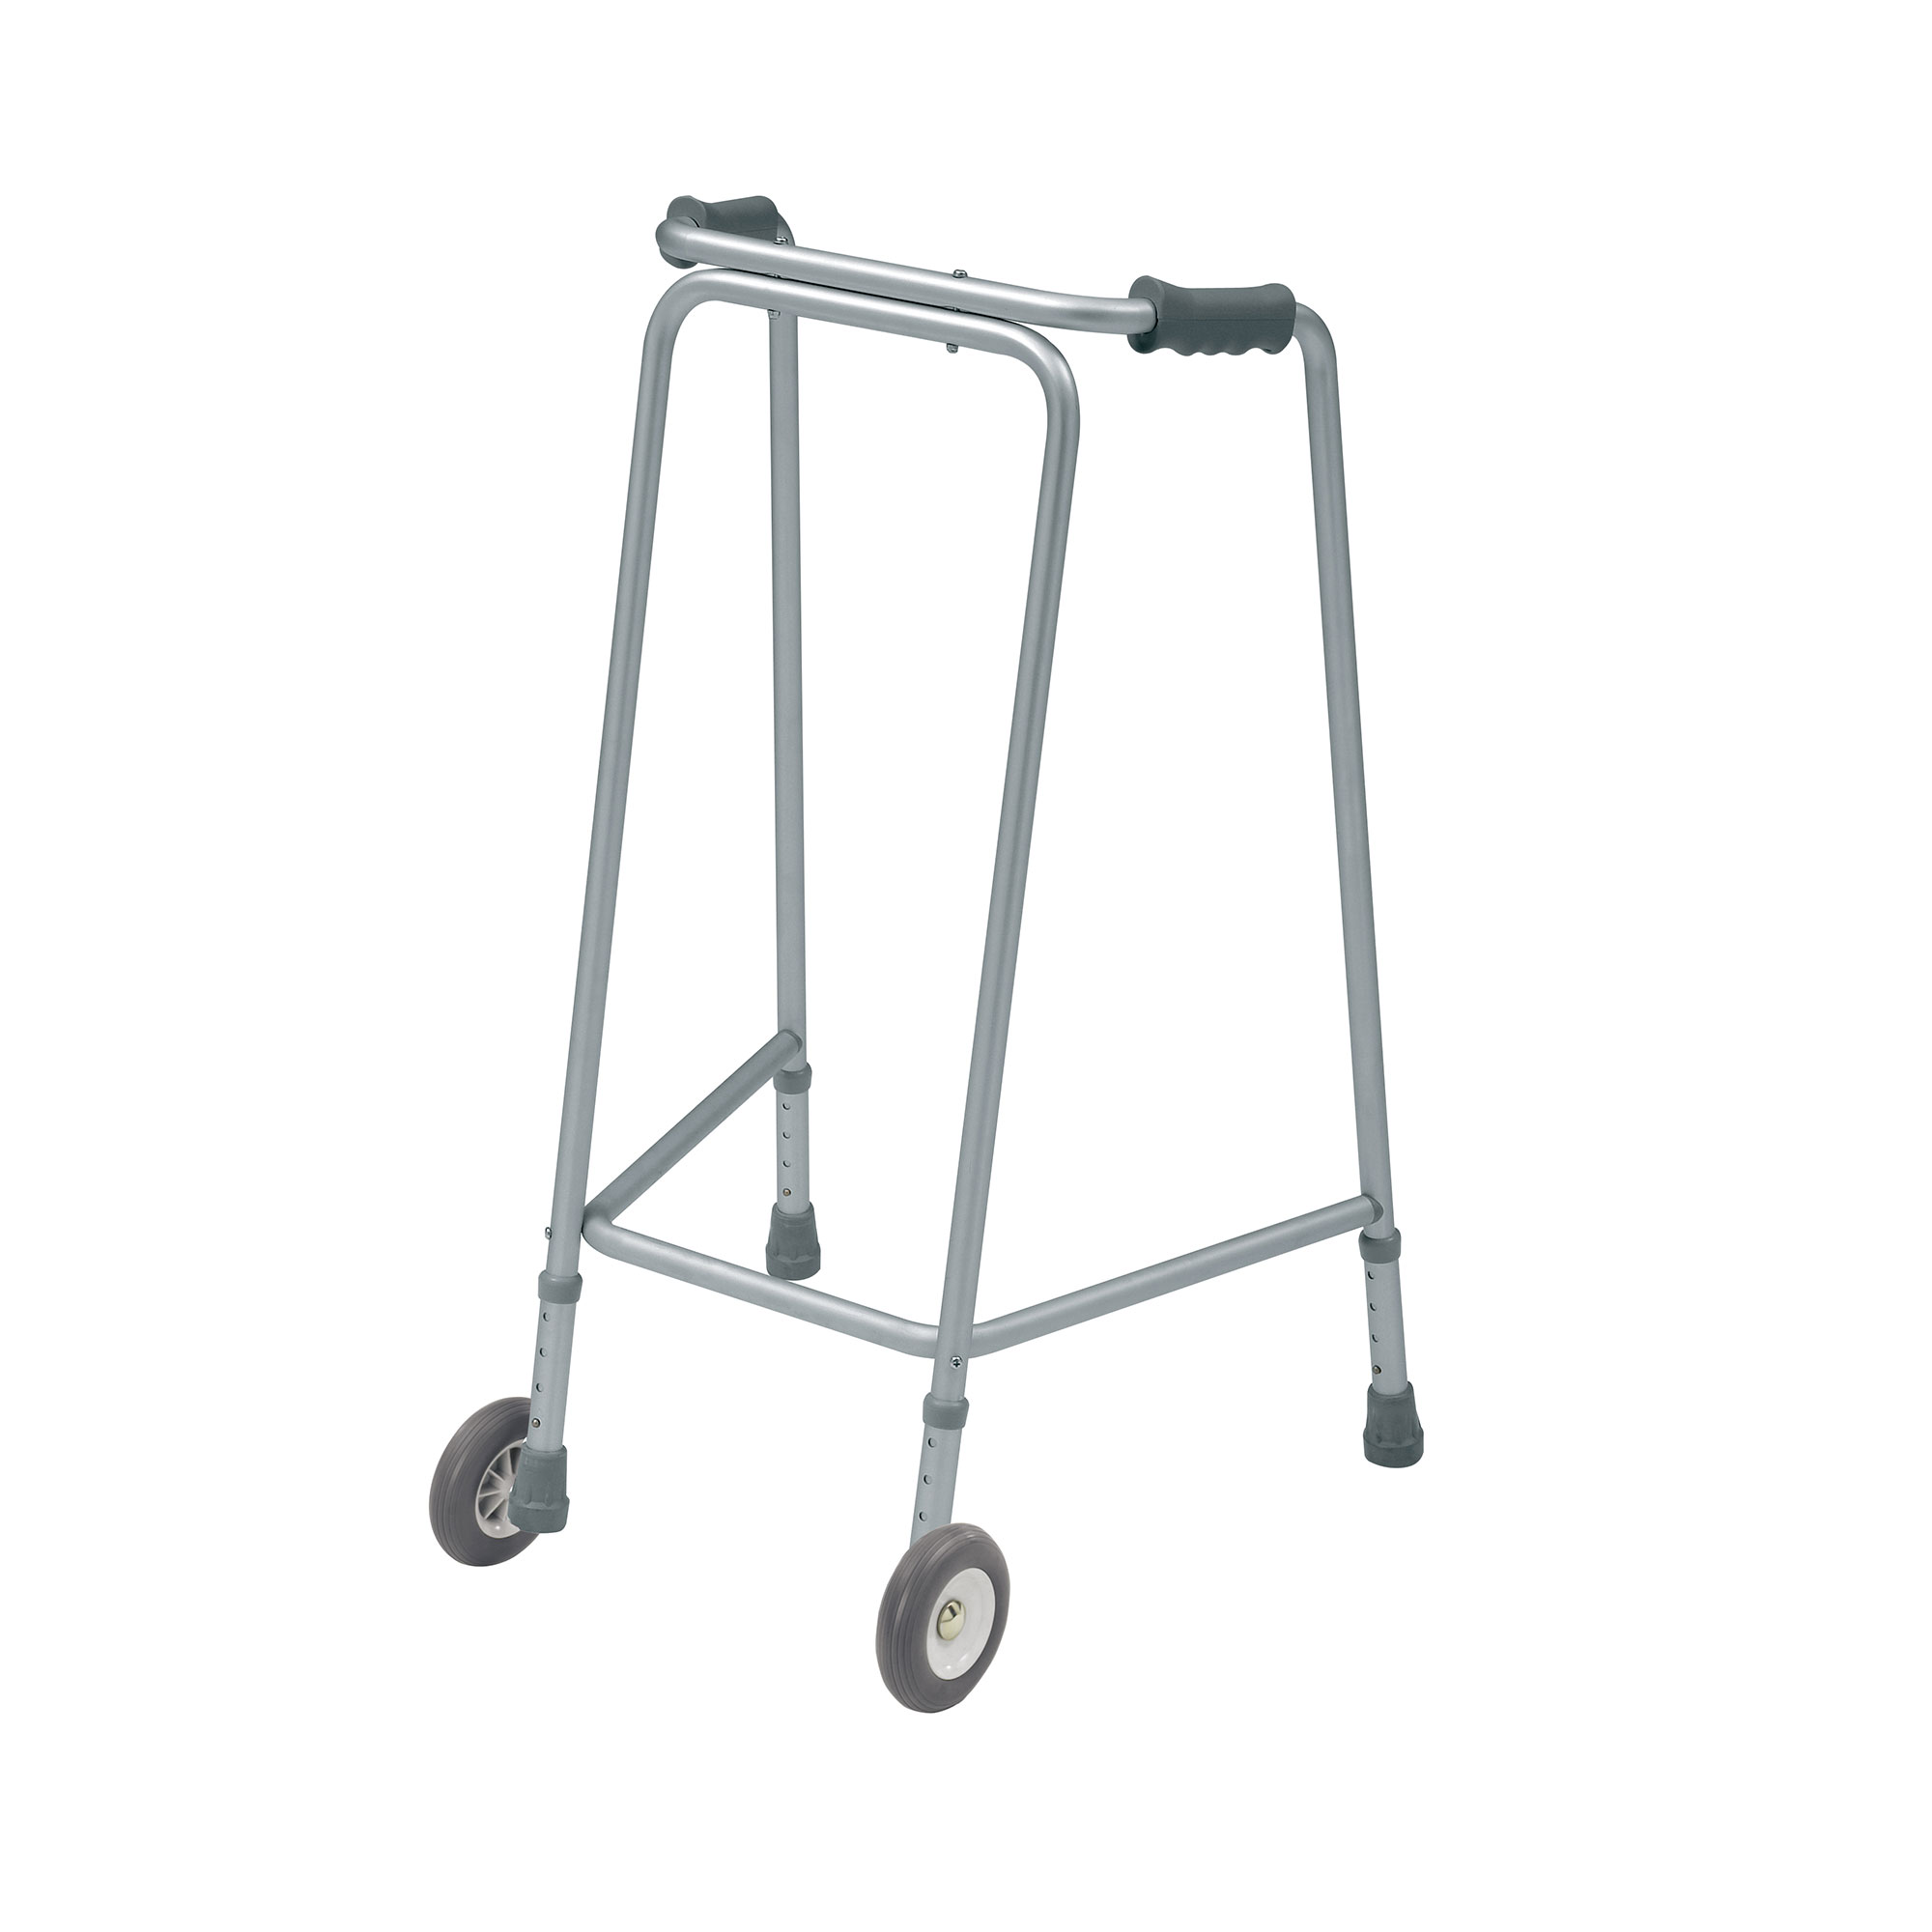 2011 Elc Narrow Lightweight Walking Frame With Wheels